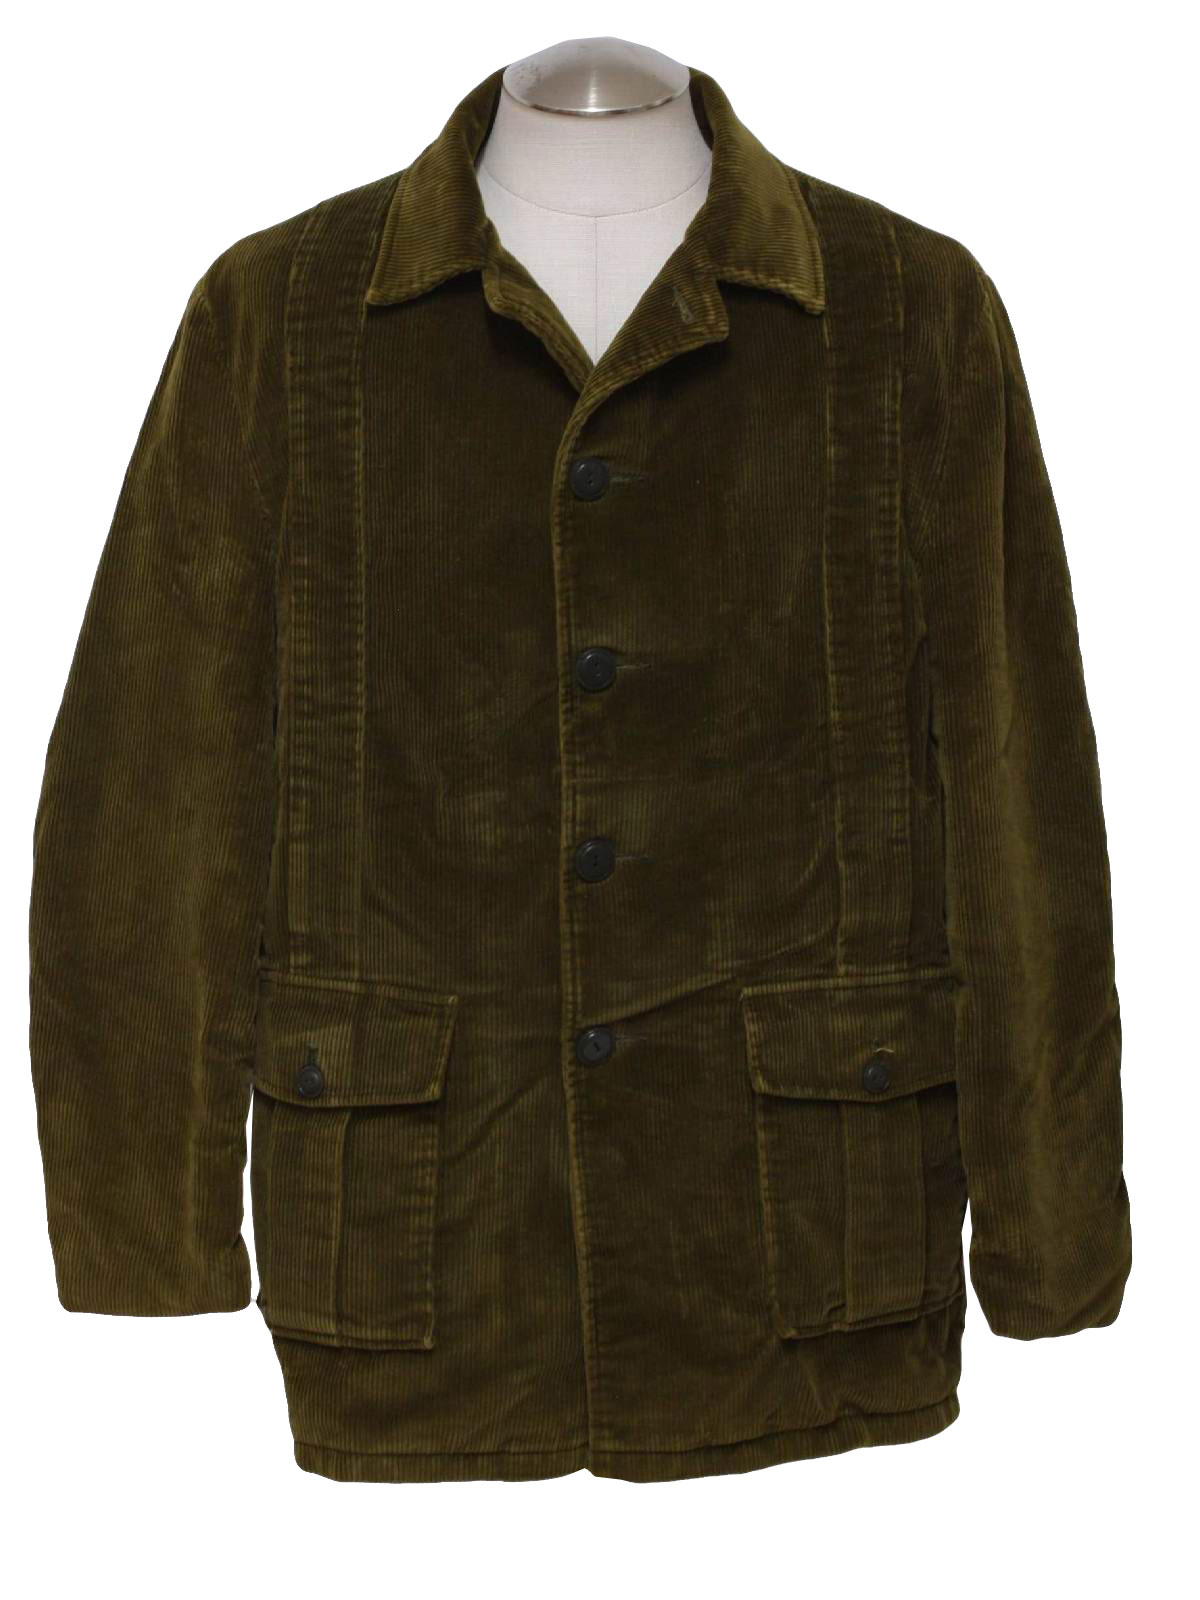 Northwest Territory Men's Corduroy Jacket. Sold by Kmart. $ La Redoute Collections Womens Belted Corduroy Coat. Sold by La Redoute. $ La Redoute Collections Womens Two-Tone Corduroy Jacket. Sold by La Redoute. $ $ - $ London Fog Heritage Mens Waxed Cotton Corduroy Trim Jacket.